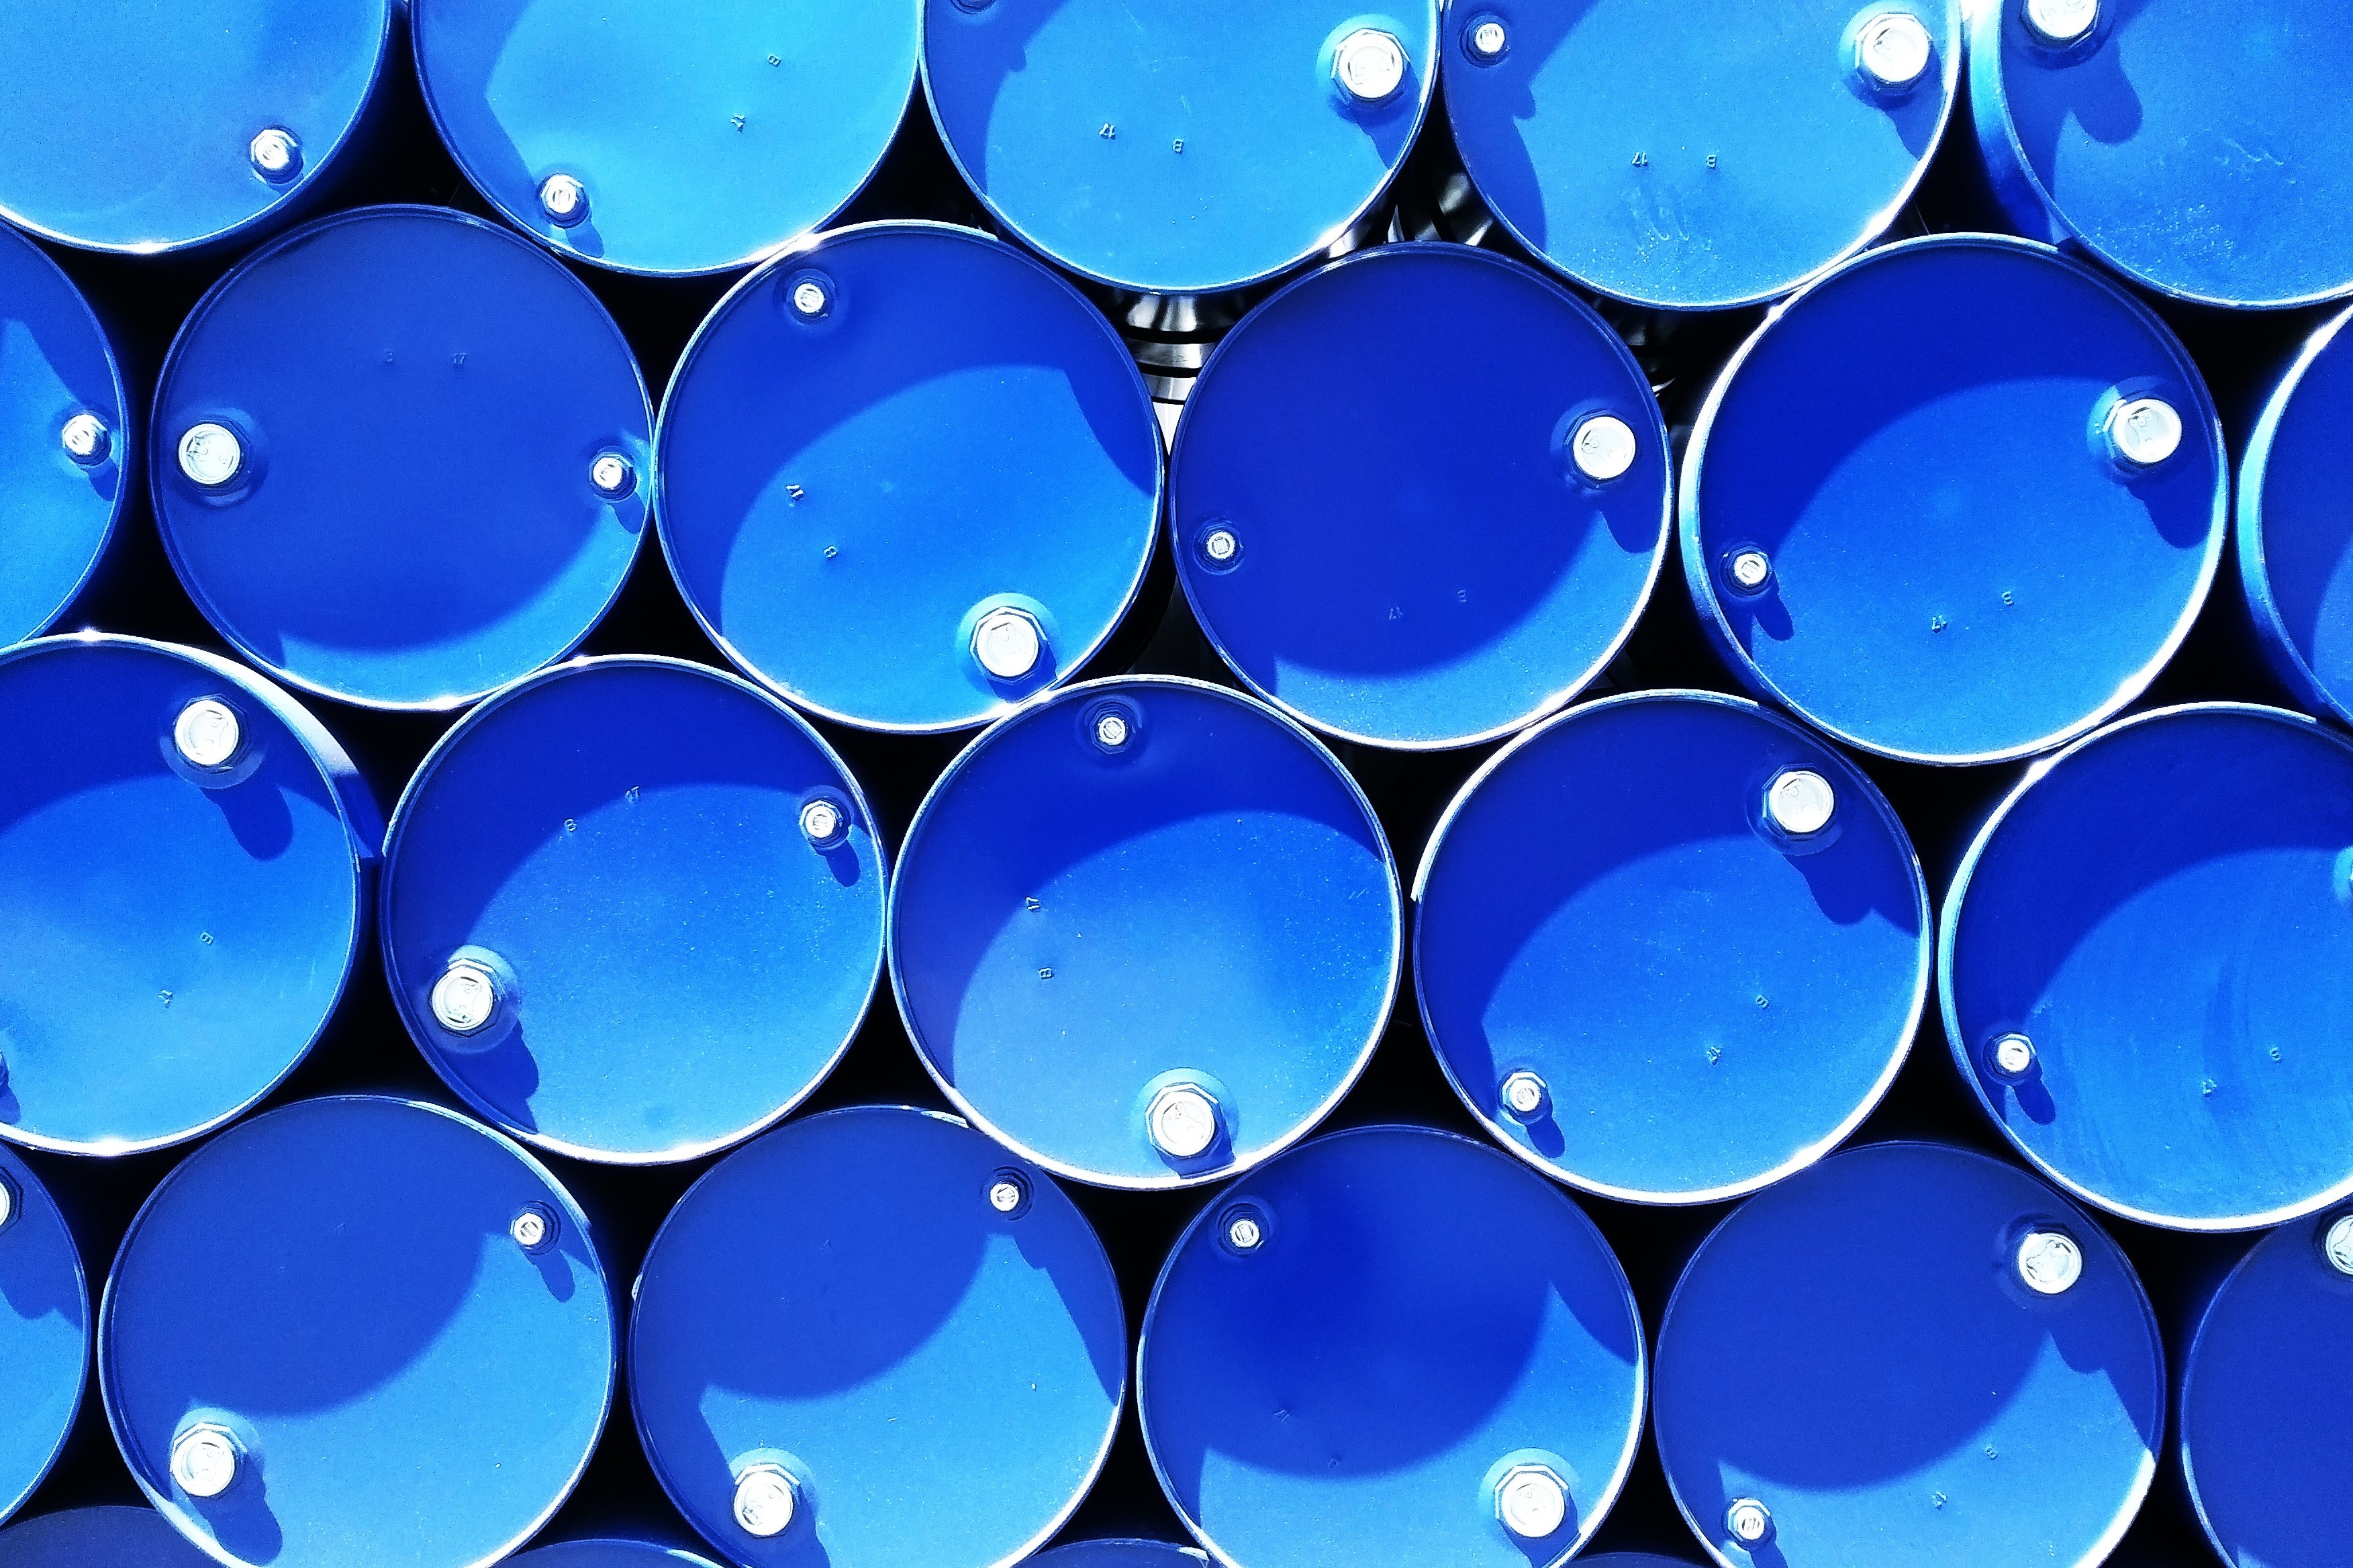 blue-containers-drums-615670 (2)